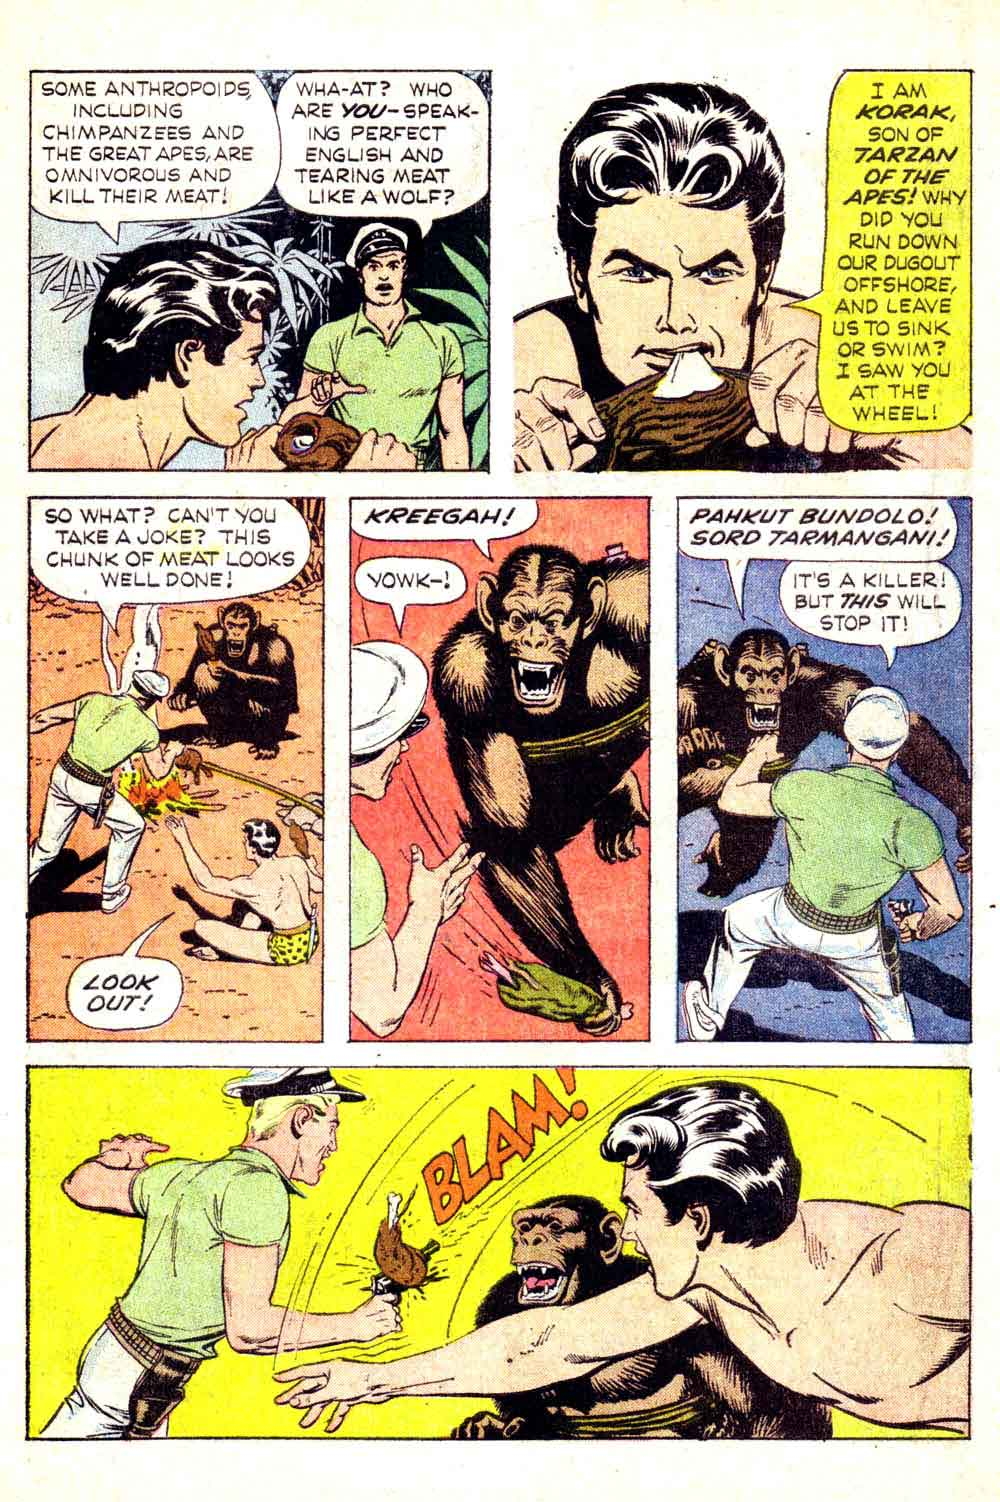 Korak Son of Tarzan v1 #2 gold key silver age 1960s comic book page art by Russ Manning